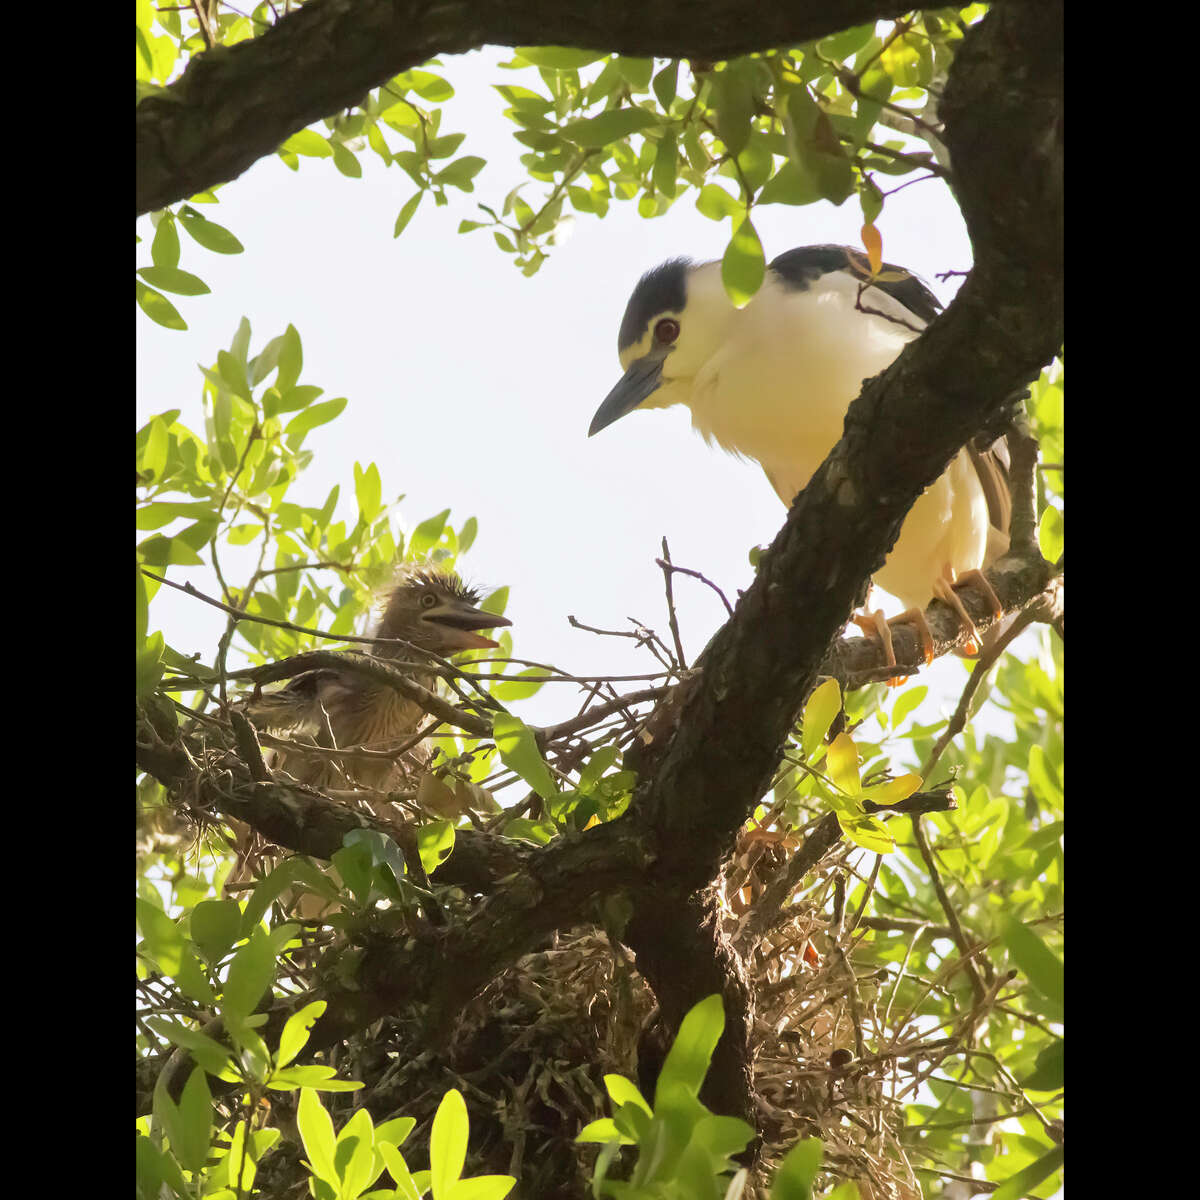 A Black-crowned Night-Heron looks after a youngster in a nest in the Boulevard Oaks subdivision north of Rice University.